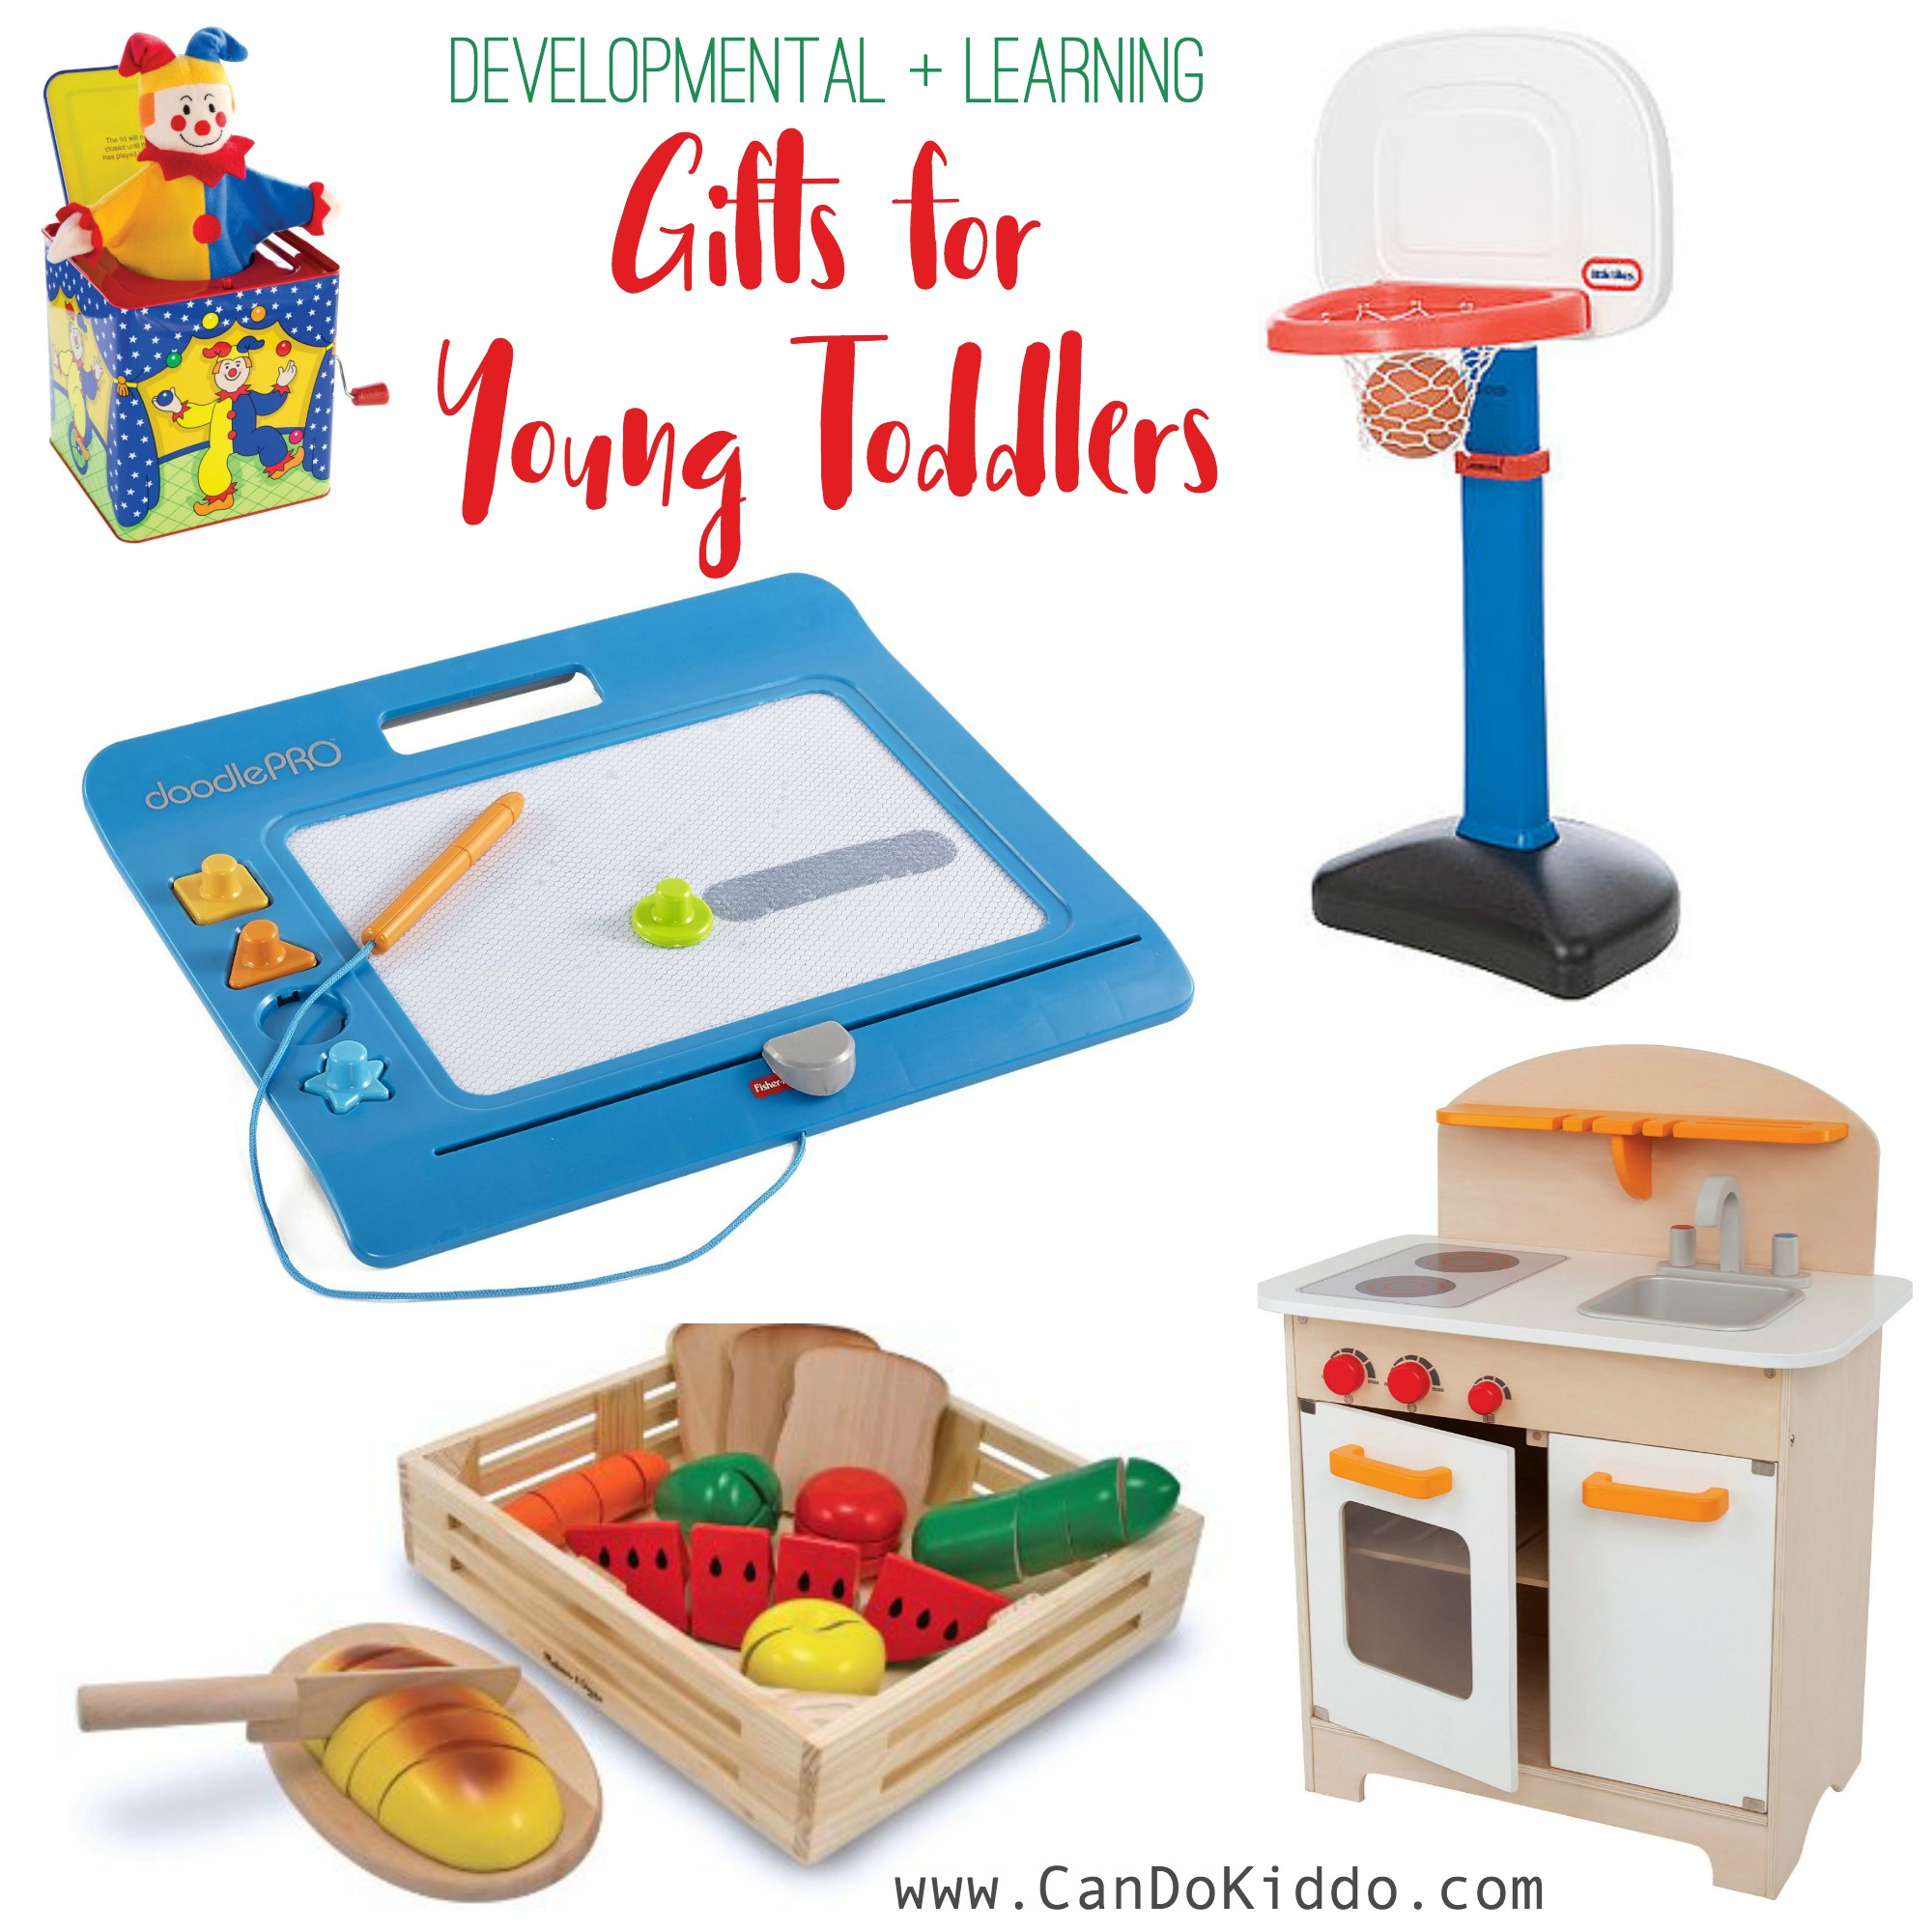 Gift ideas and toys for young toddlers. www.CanDoKiddo.com